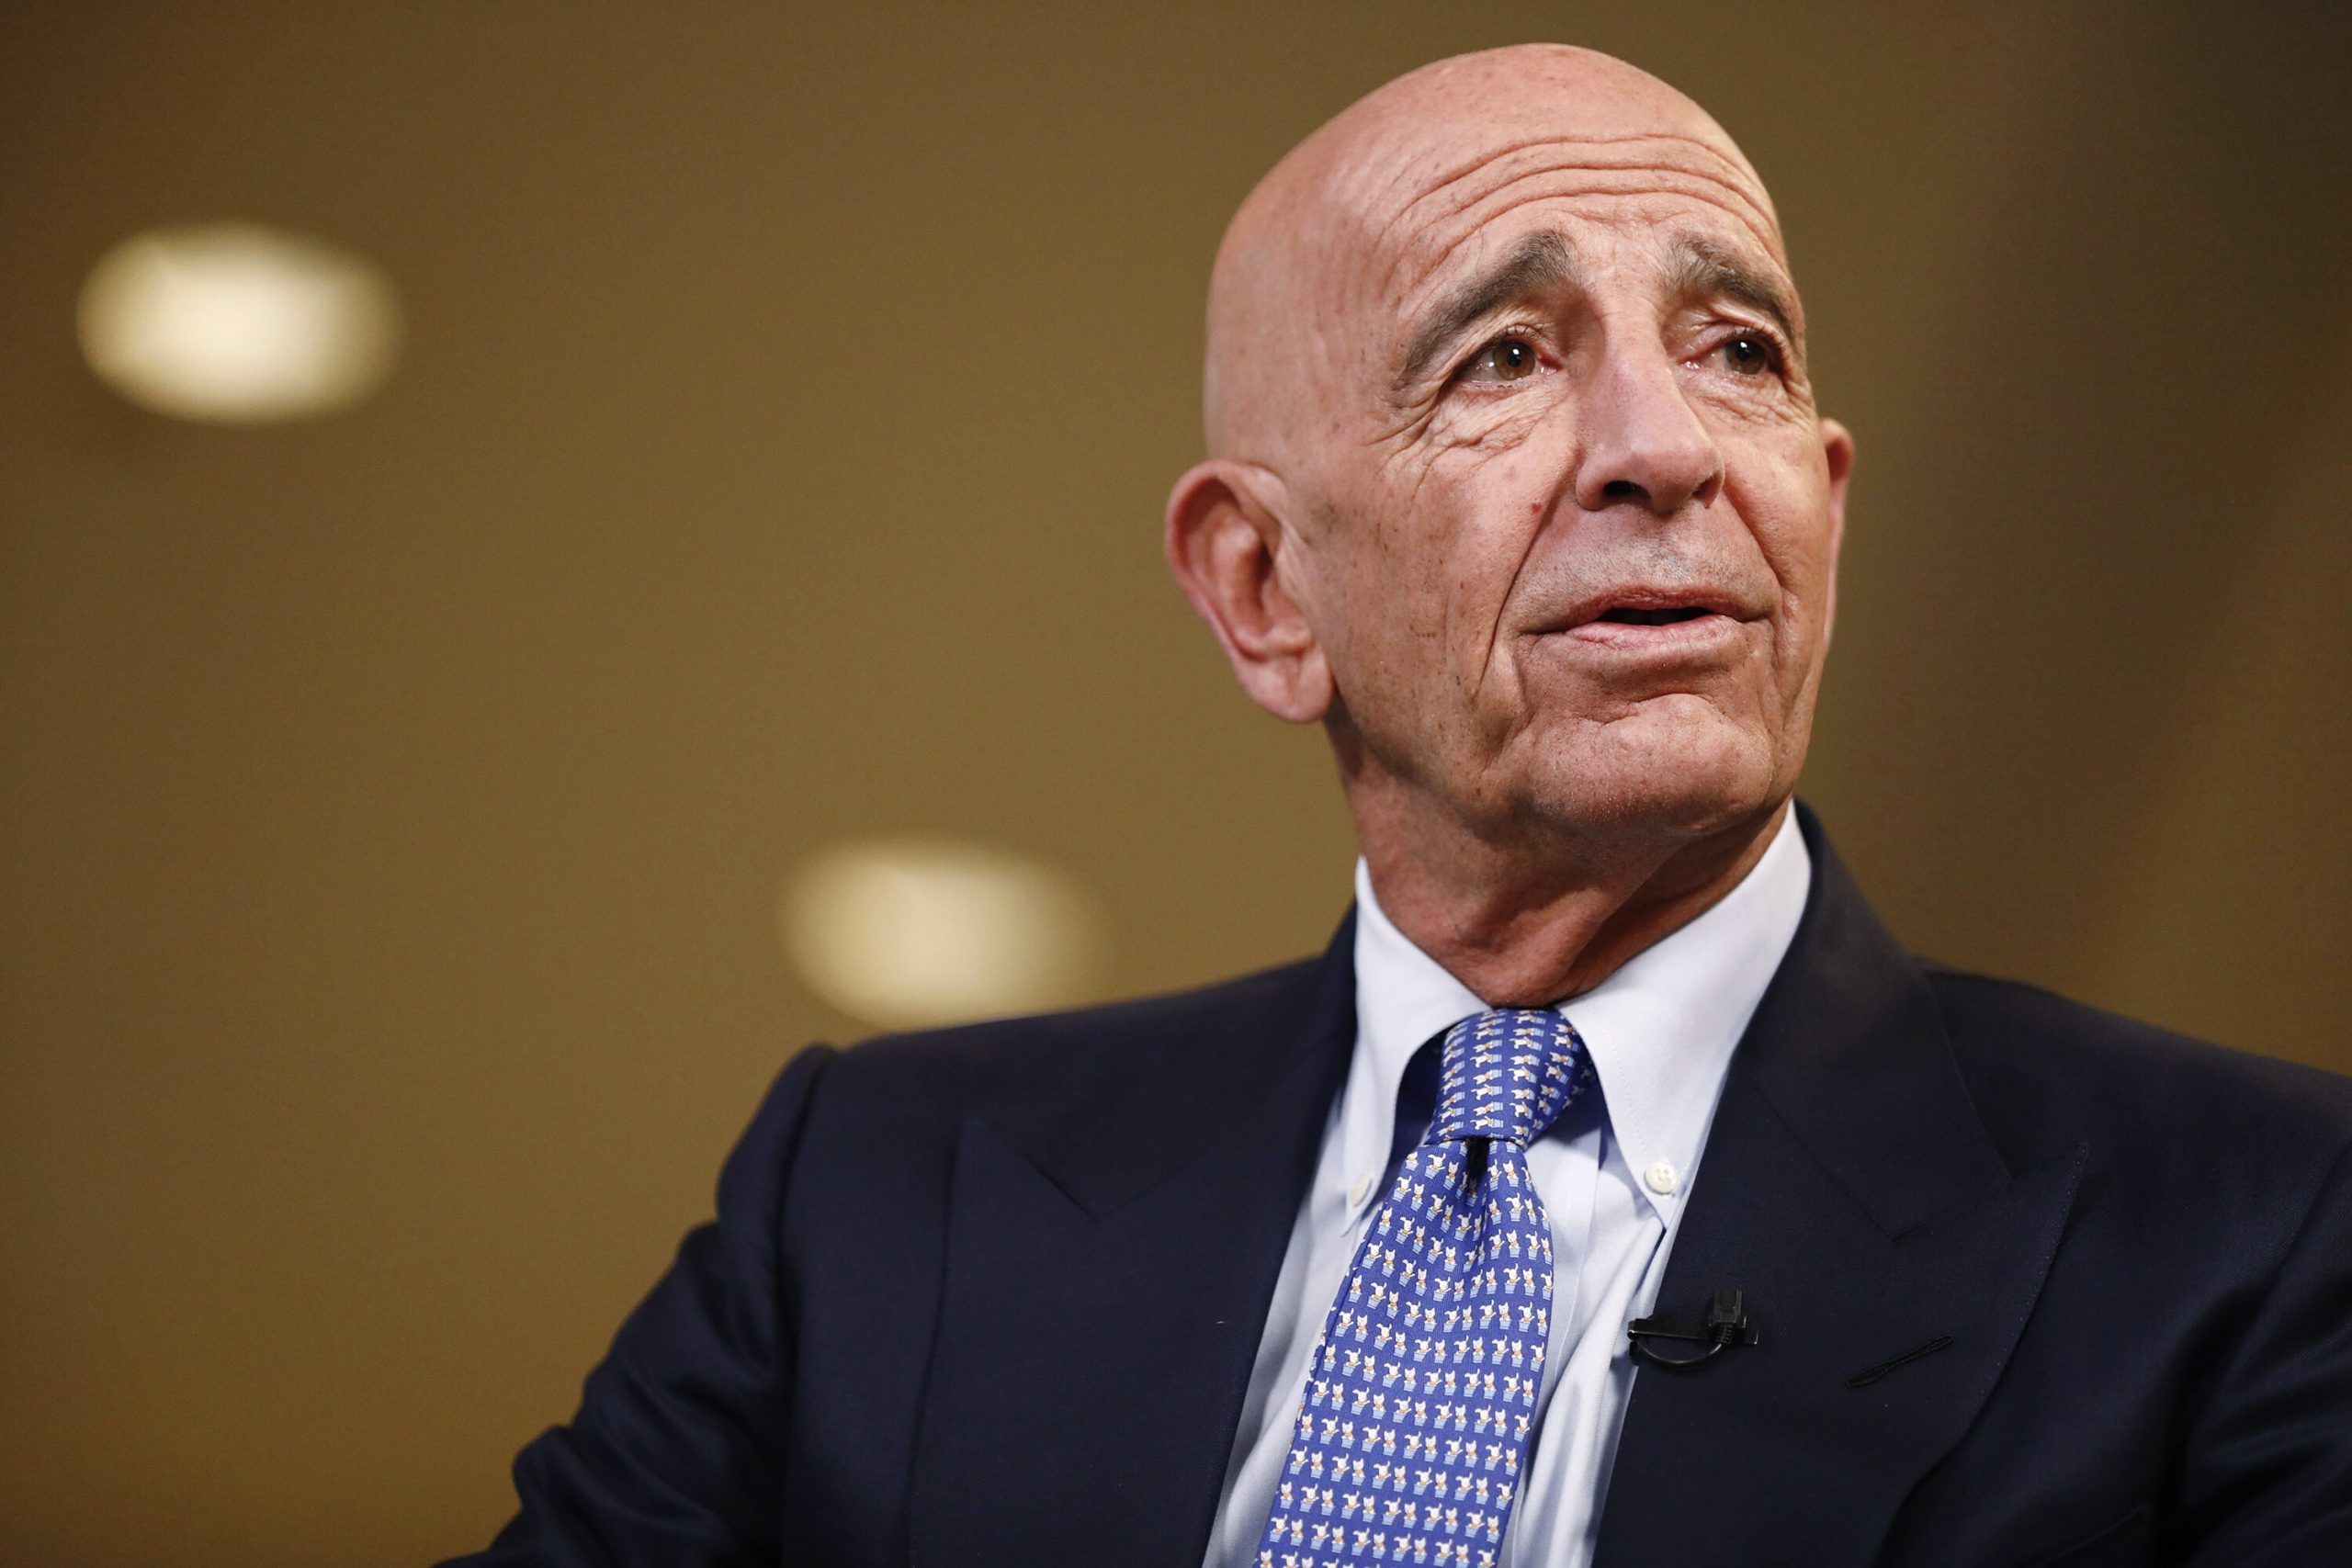 <i>Patrick T. Fallon/Bloomberg/Getty Images</i><br/>The illegal foreign lobbying charges brought against Tom Barrack on July 20 punctuate a winding business and political career defined by his unique staying power in former President Donald Trump's constantly shifting orbit of advisers.